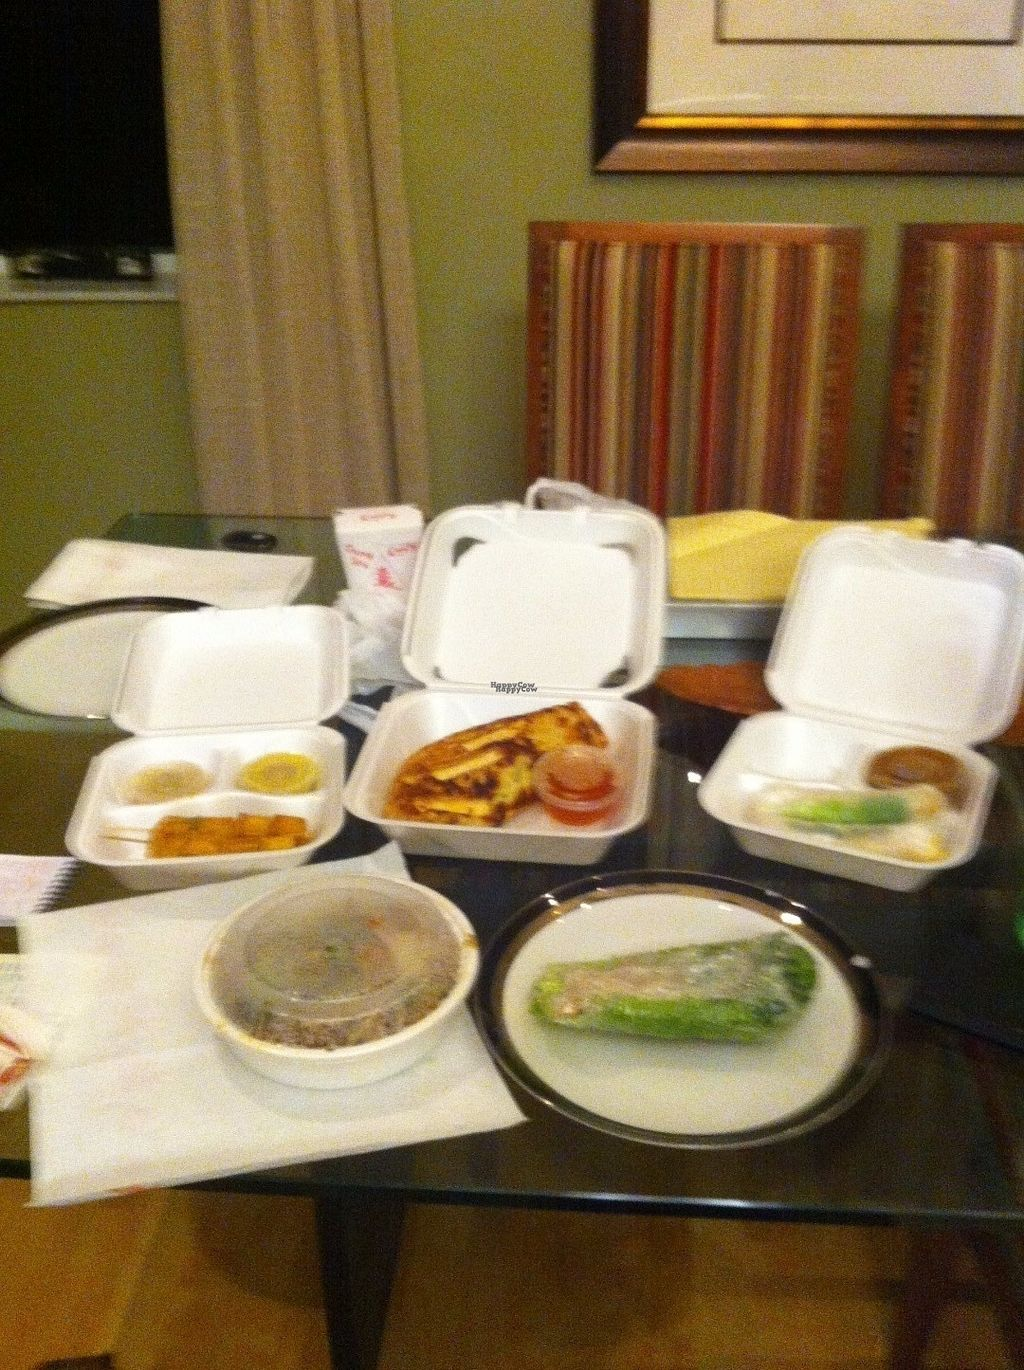 """Photo of Thai Meal  by <a href=""""/members/profile/giant%20bunnie"""">giant bunnie</a> <br/>Thai Meal <br/> August 30, 2016  - <a href='/contact/abuse/image/52884/172290'>Report</a>"""